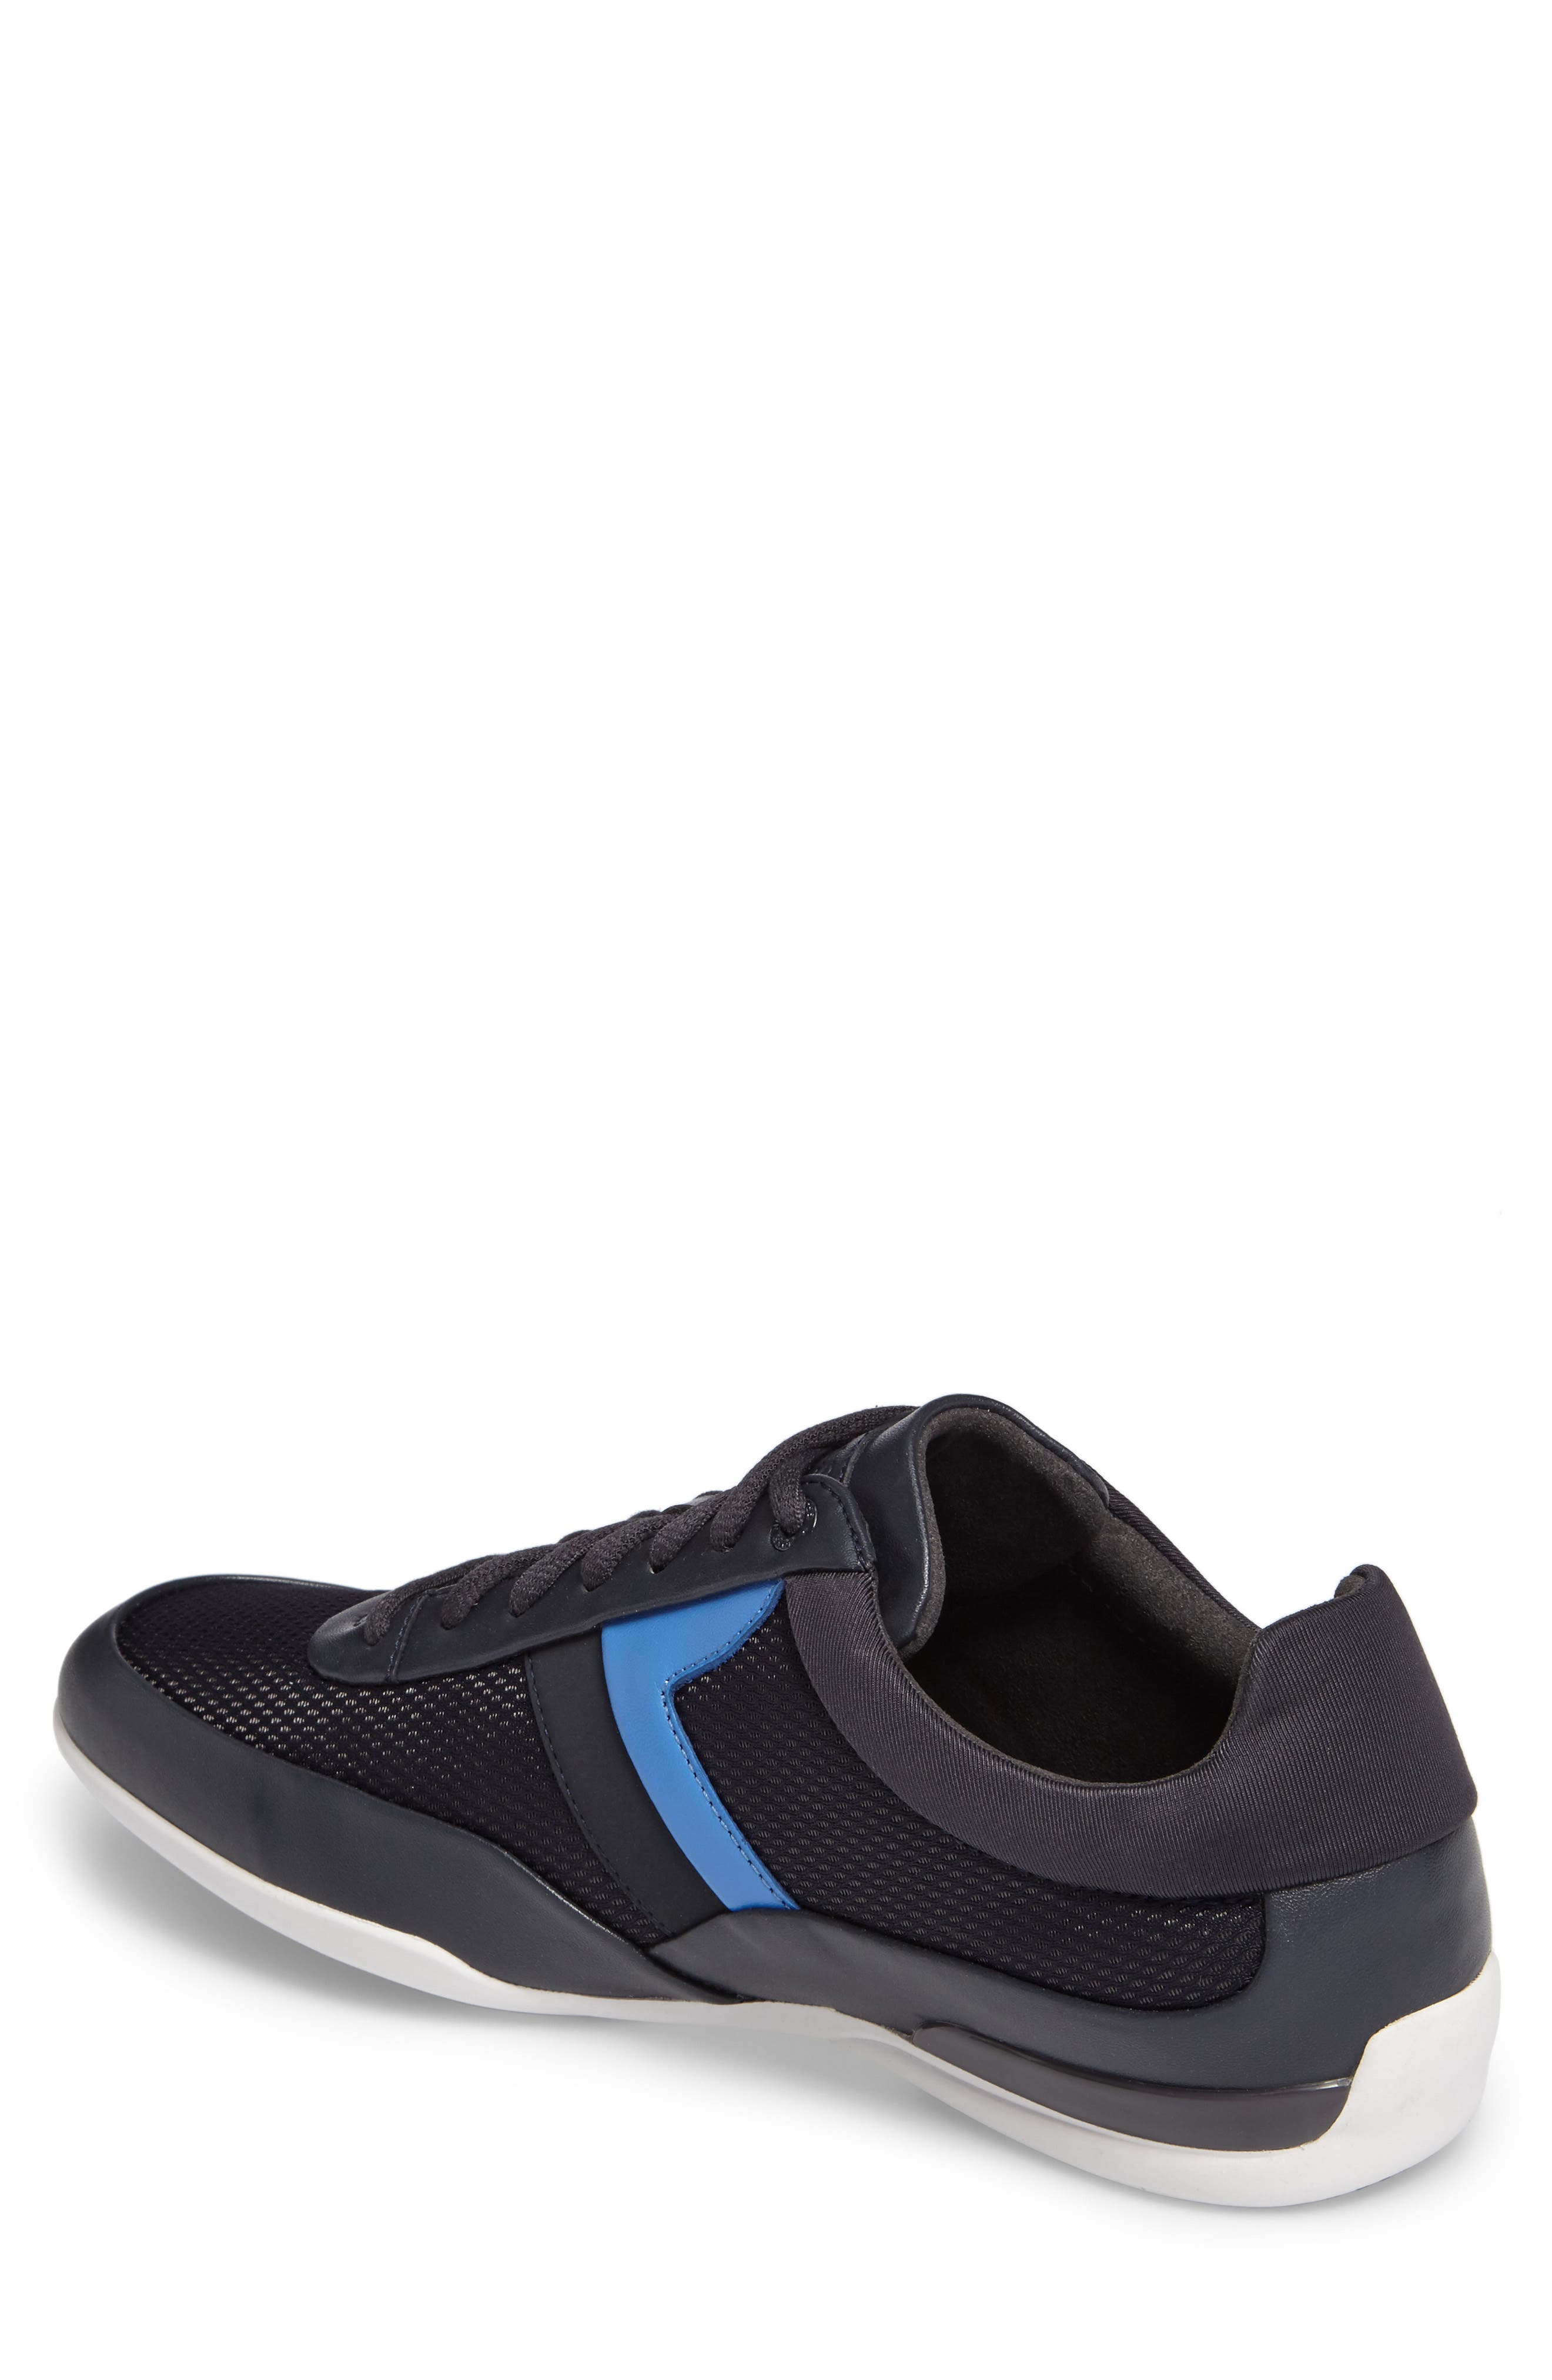 Green Space Mesh Sneaker,                             Alternate thumbnail 2, color,                             Dark Blue Leather